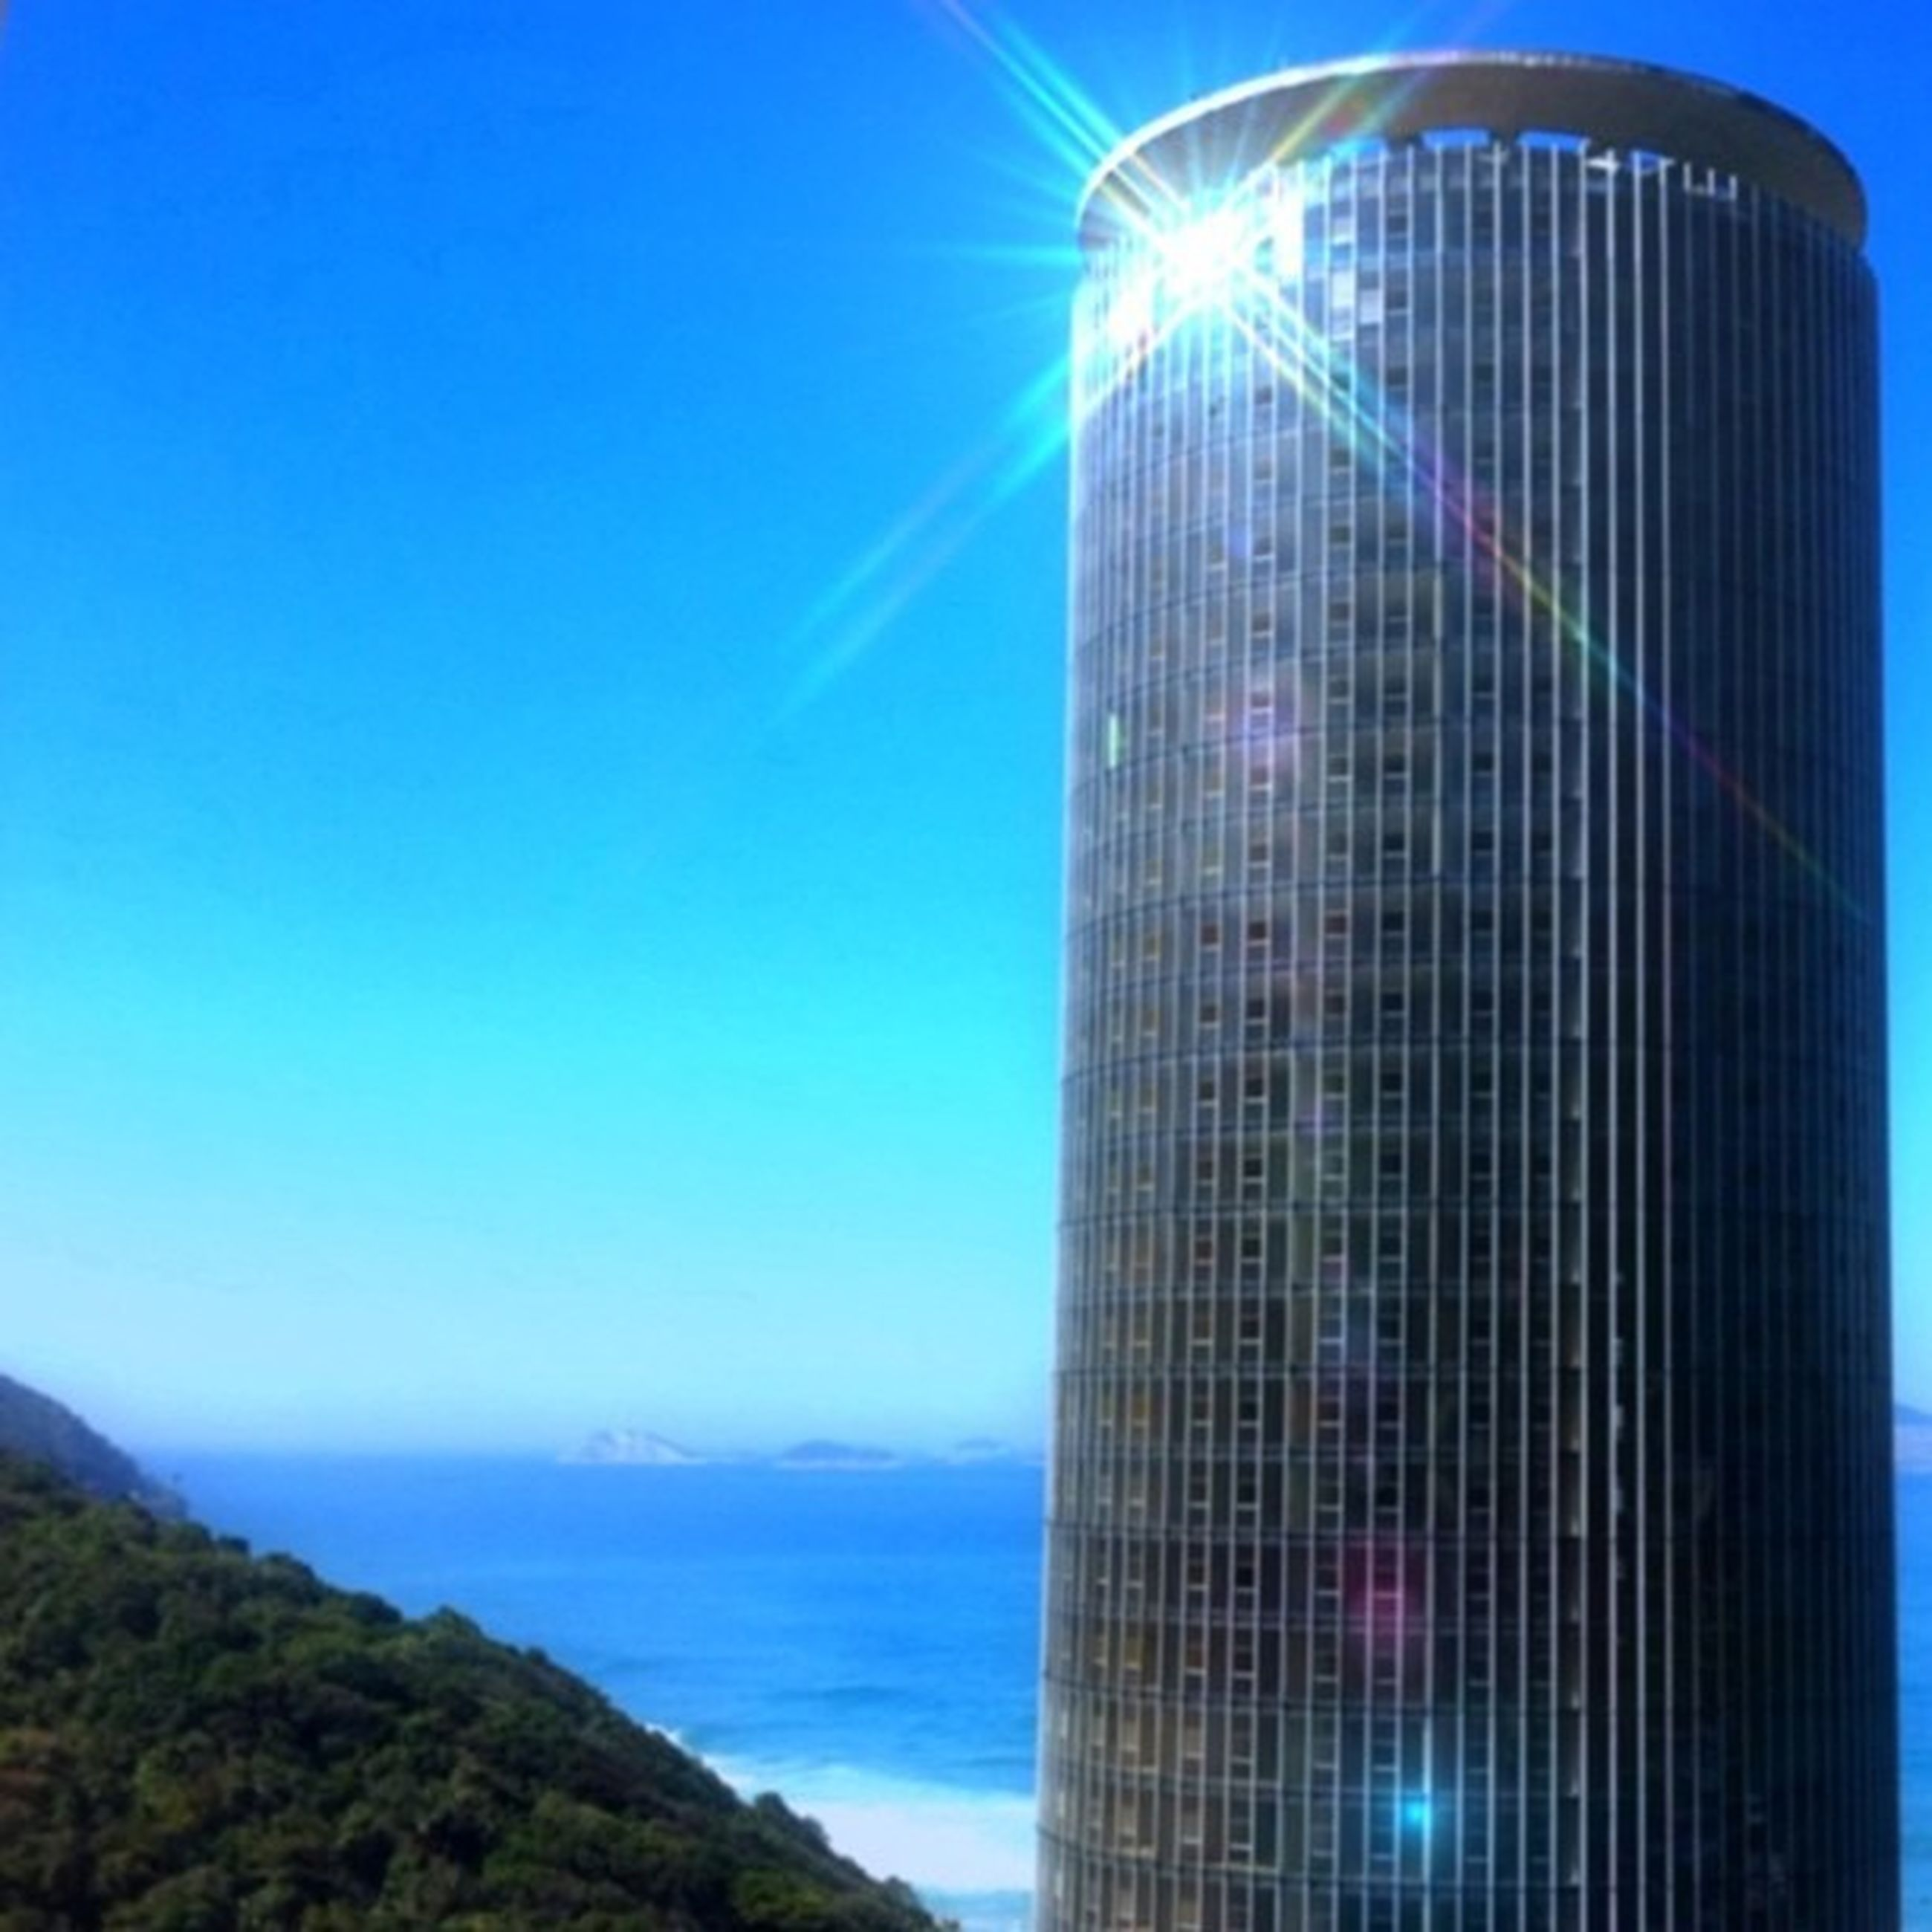 blue, architecture, built structure, building exterior, clear sky, city, modern, low angle view, skyscraper, tower, tall - high, office building, sky, outdoors, no people, copy space, reflection, sunlight, water, day